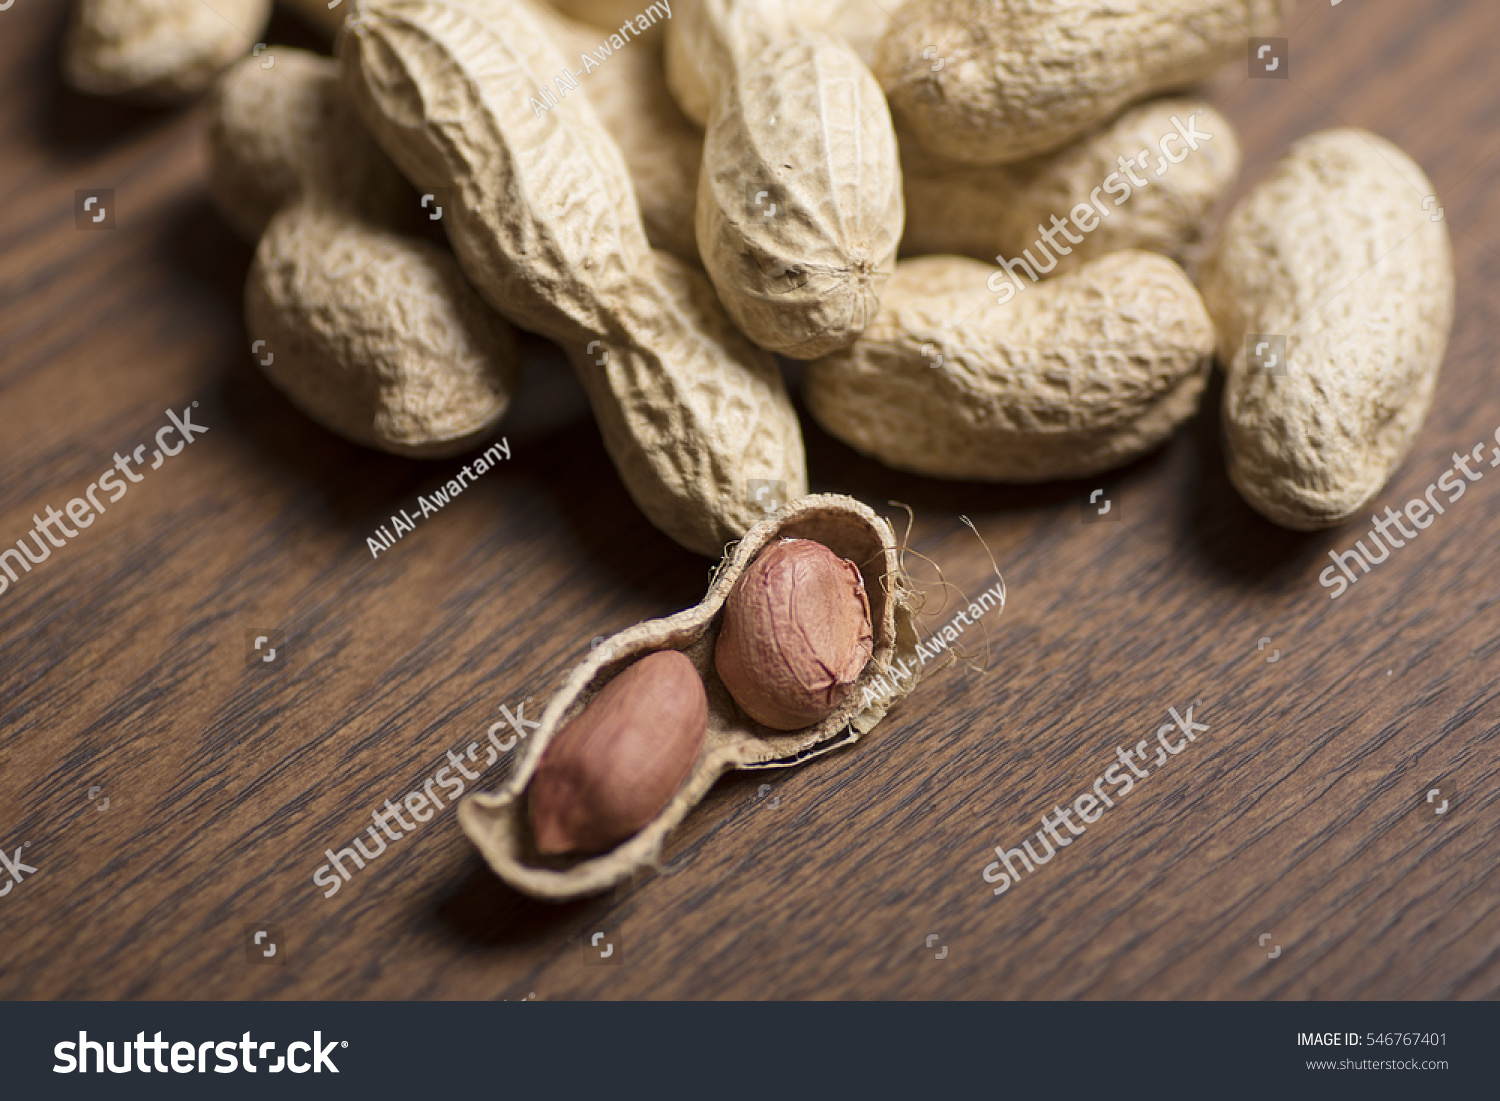 stock-photo-close-up-of-peanuts-on-brown